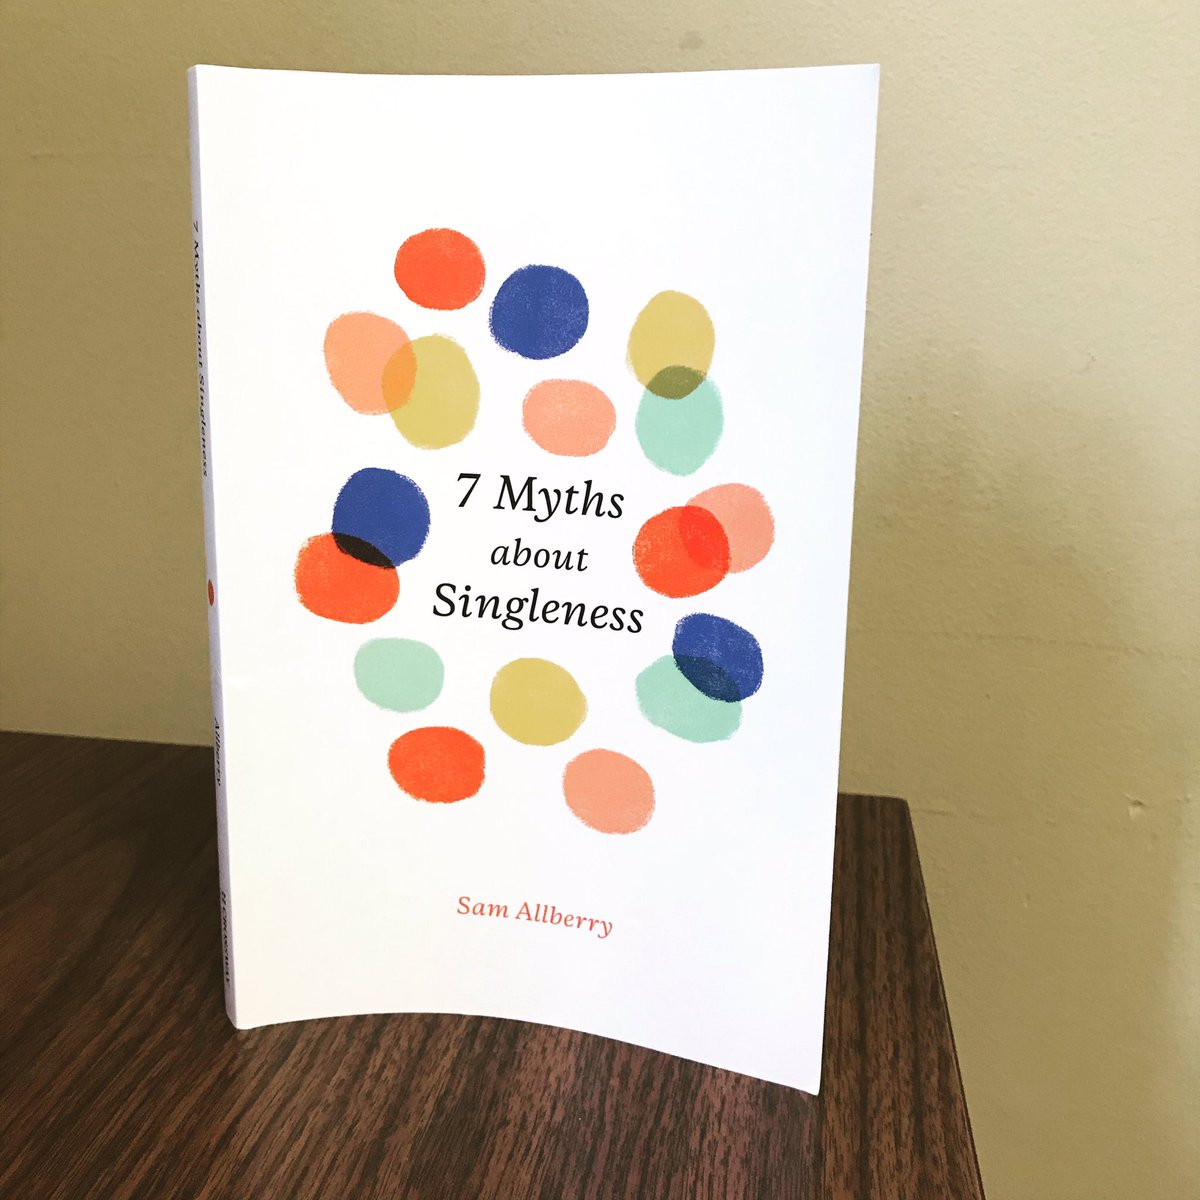 Whether you are single or married, older or younger, whether you are a new Christian or have been a Christian for years, whether you know nothing about what the Bible says about singleness or think you already know what the Bible says - you NEED to read this book by @SamAllberry!